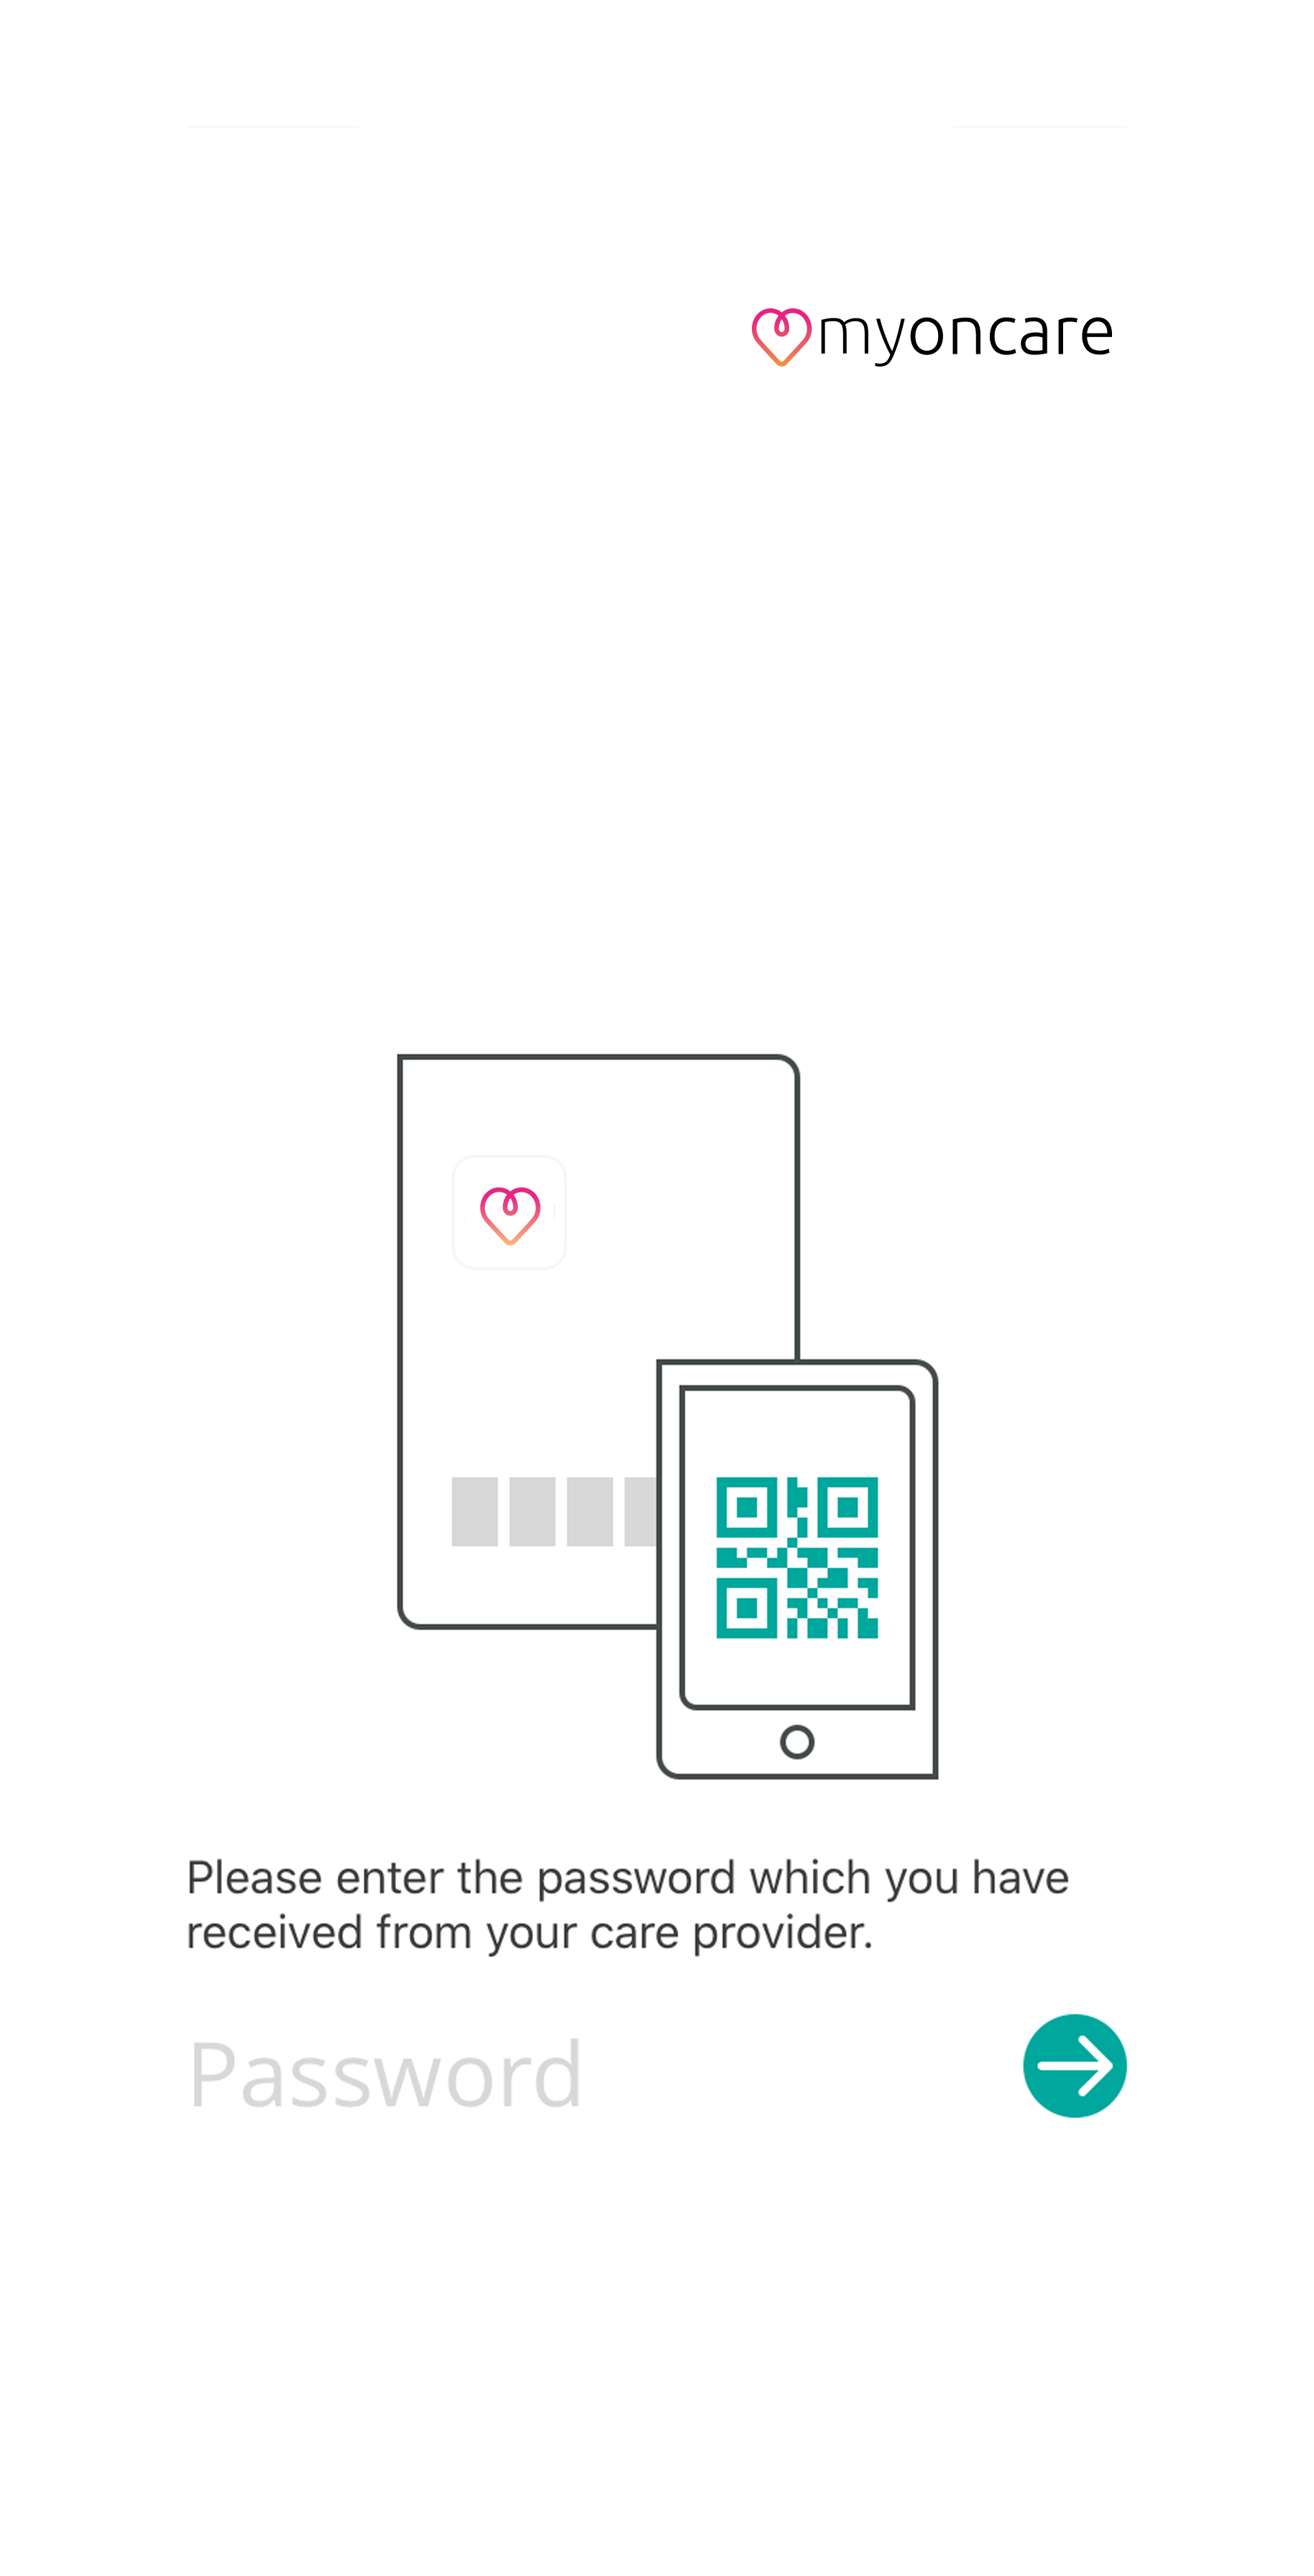 app enter password screen